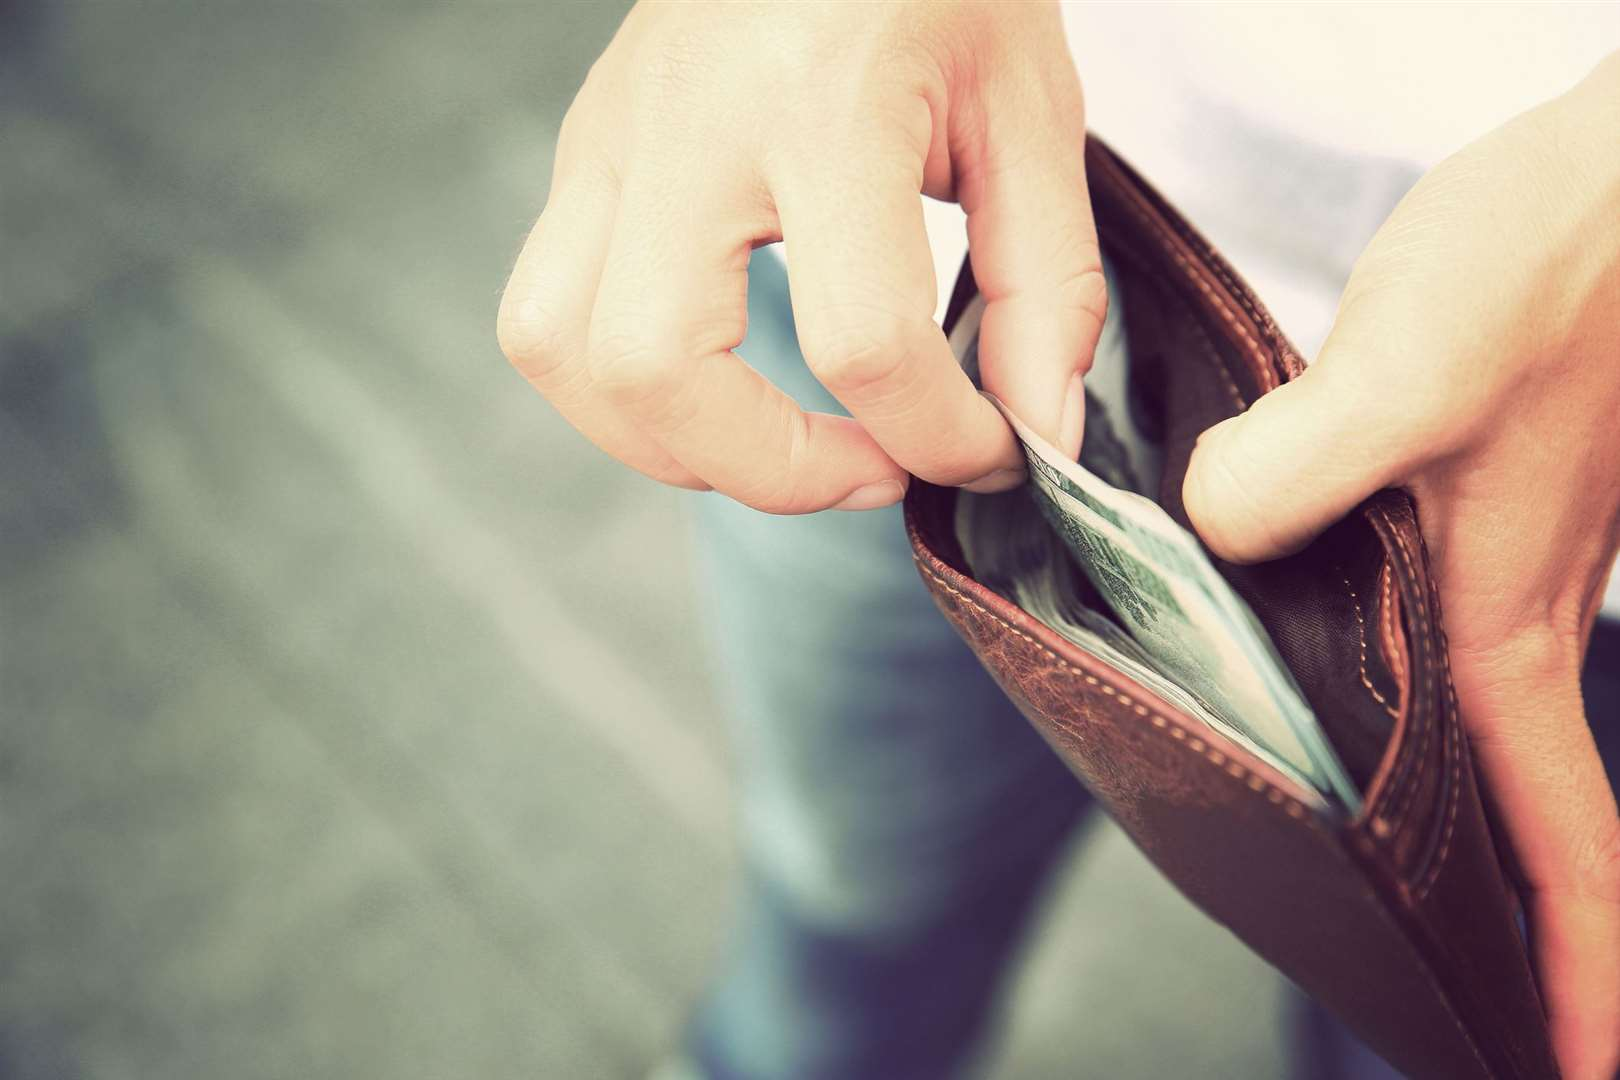 More and more of us are swapping the cash in our wallets for digital or electronic payments